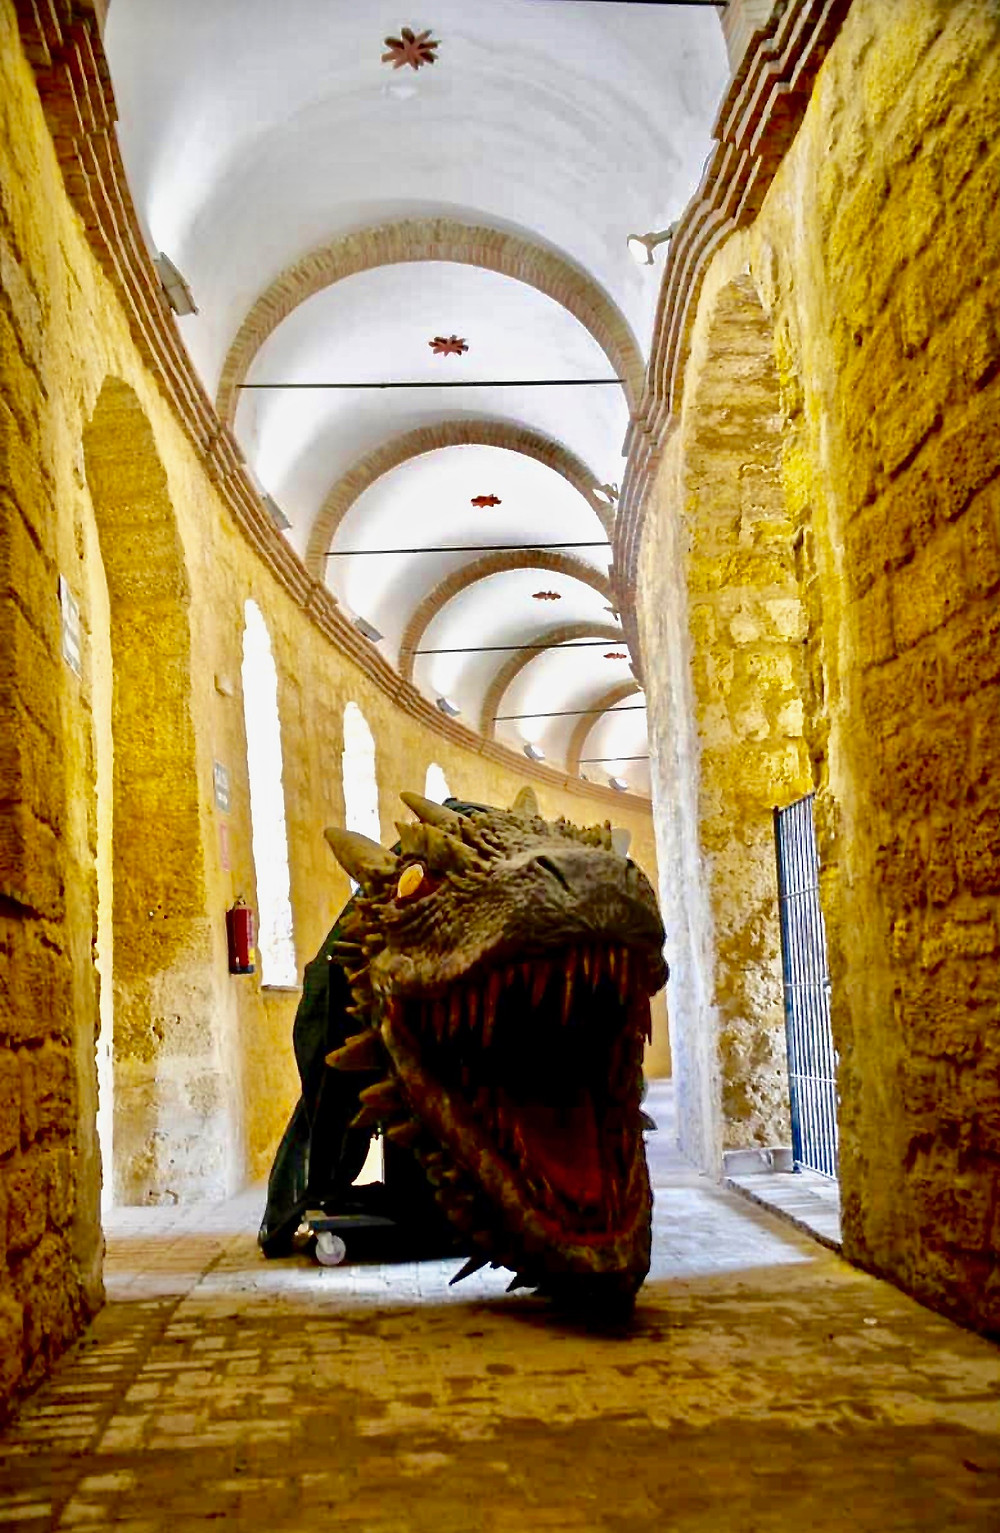 a dragon skull greets you in the Osuna bullring